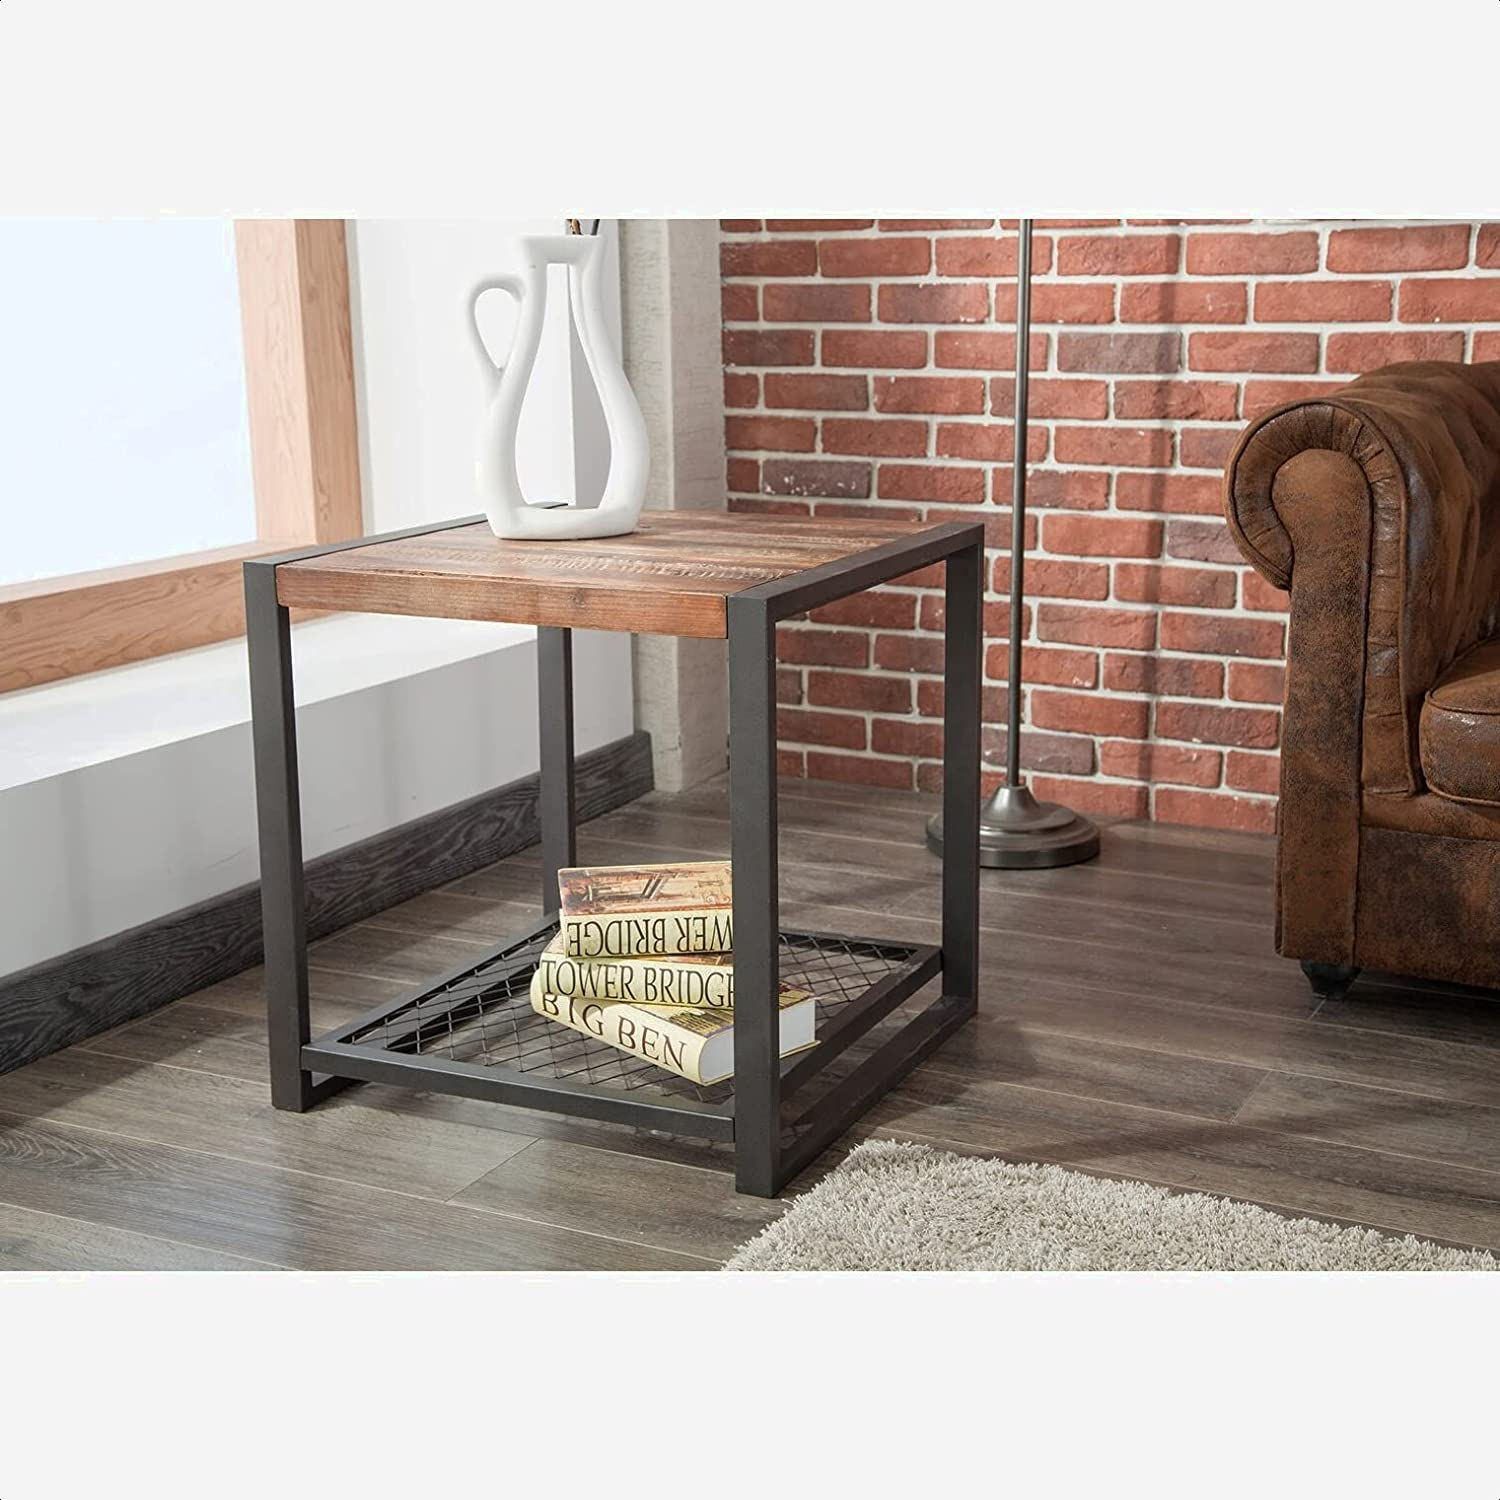 Sawyer Luxury goods End Table Integrated Wireless shopping Base No Surface: Charging